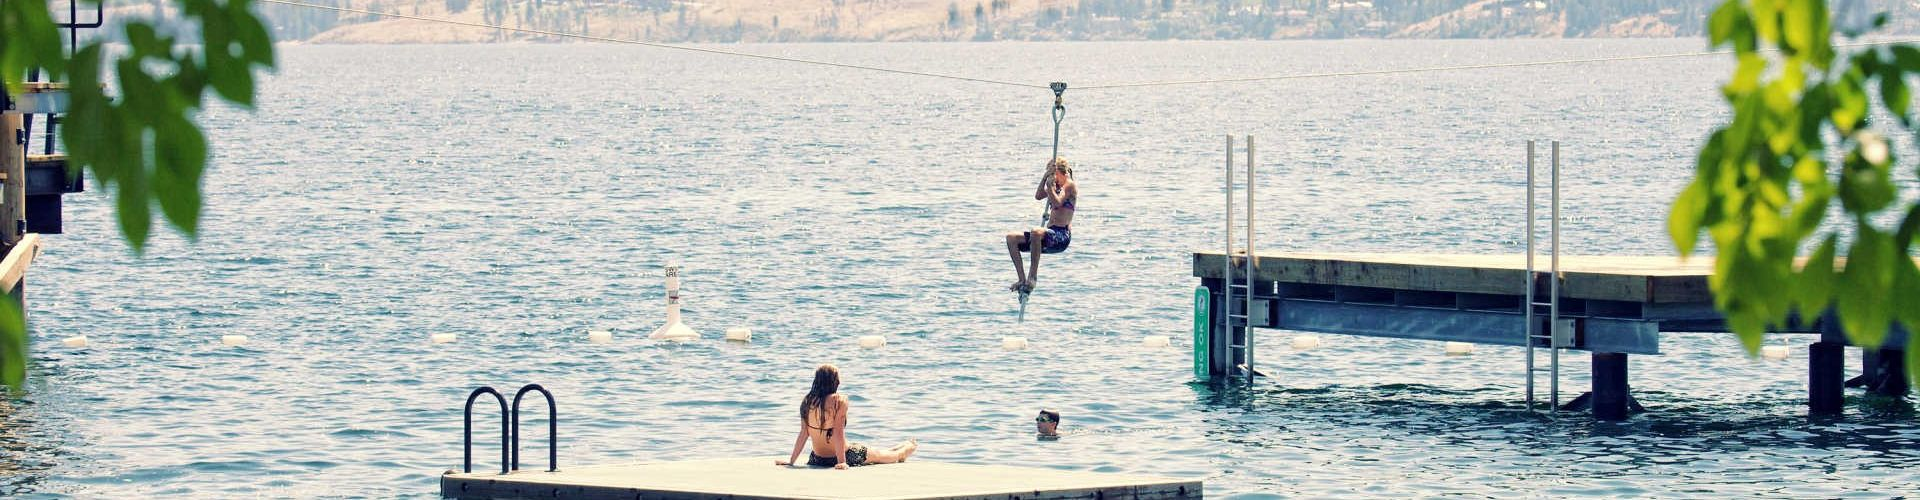 Ways to cool down beaches west kelowna